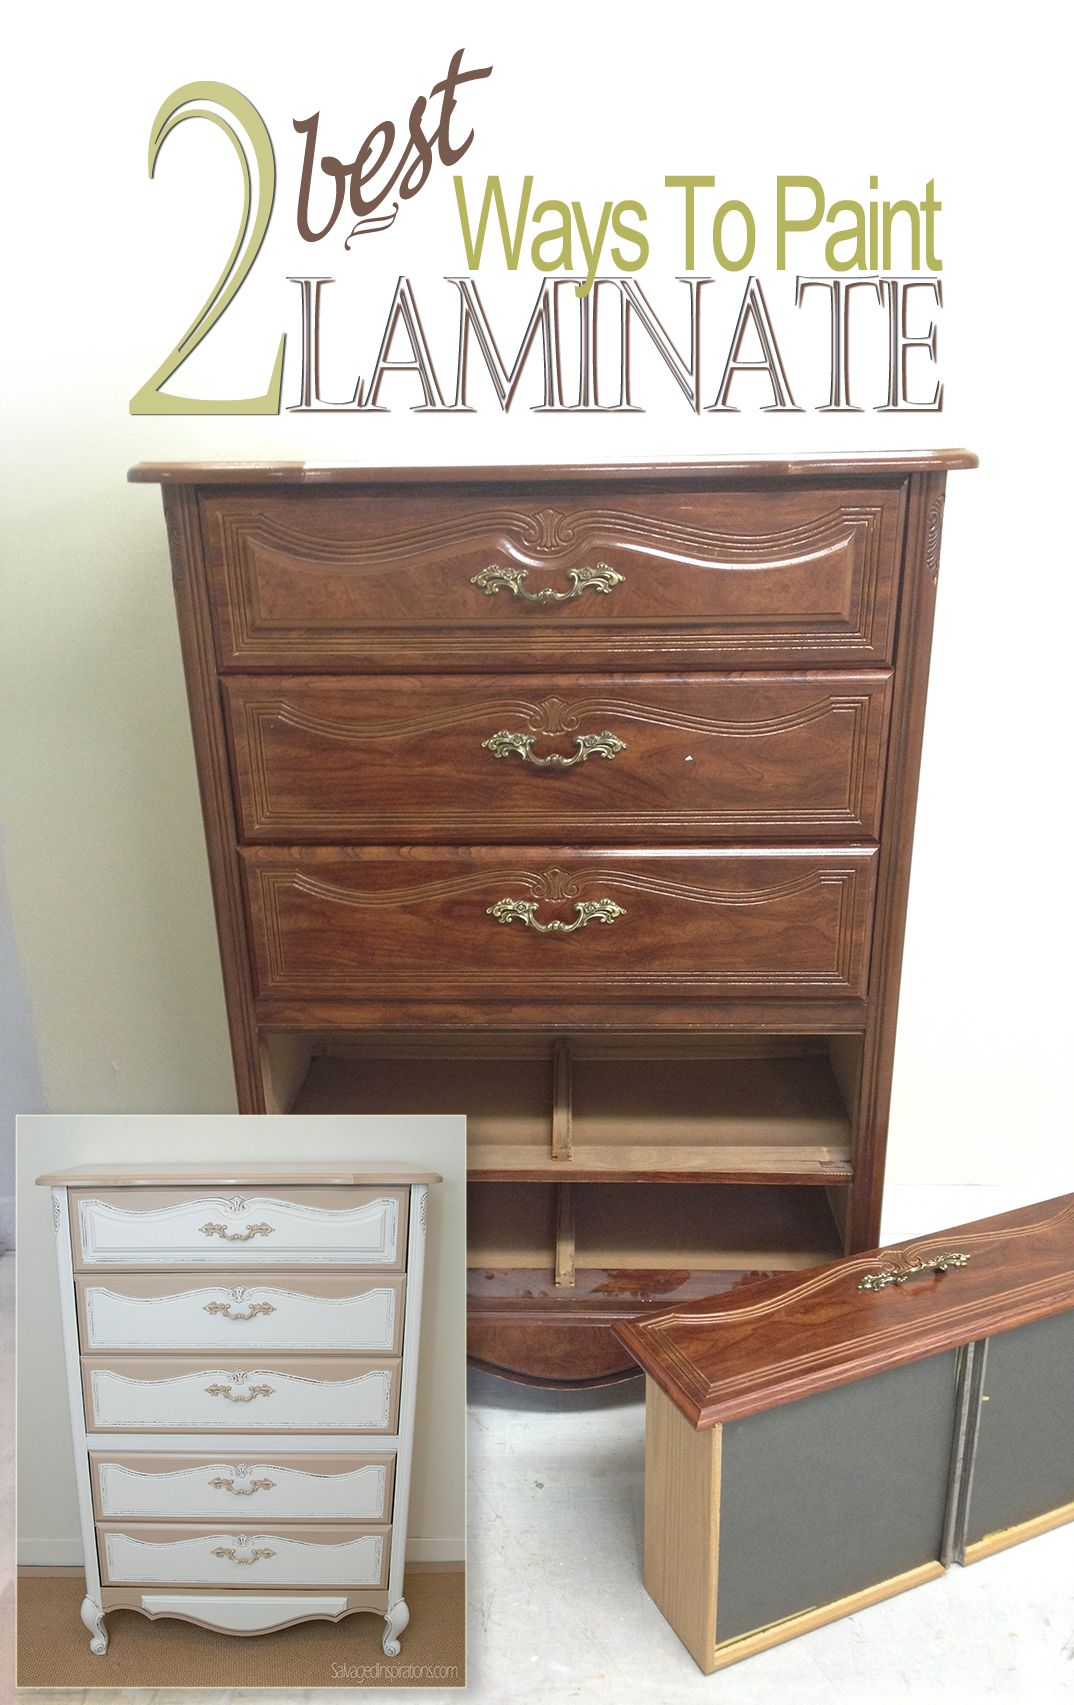 Good Salvaged Inspirations | The 2 Best Ways To Paint Laminate Furniture.  Laminate Can Paint Up